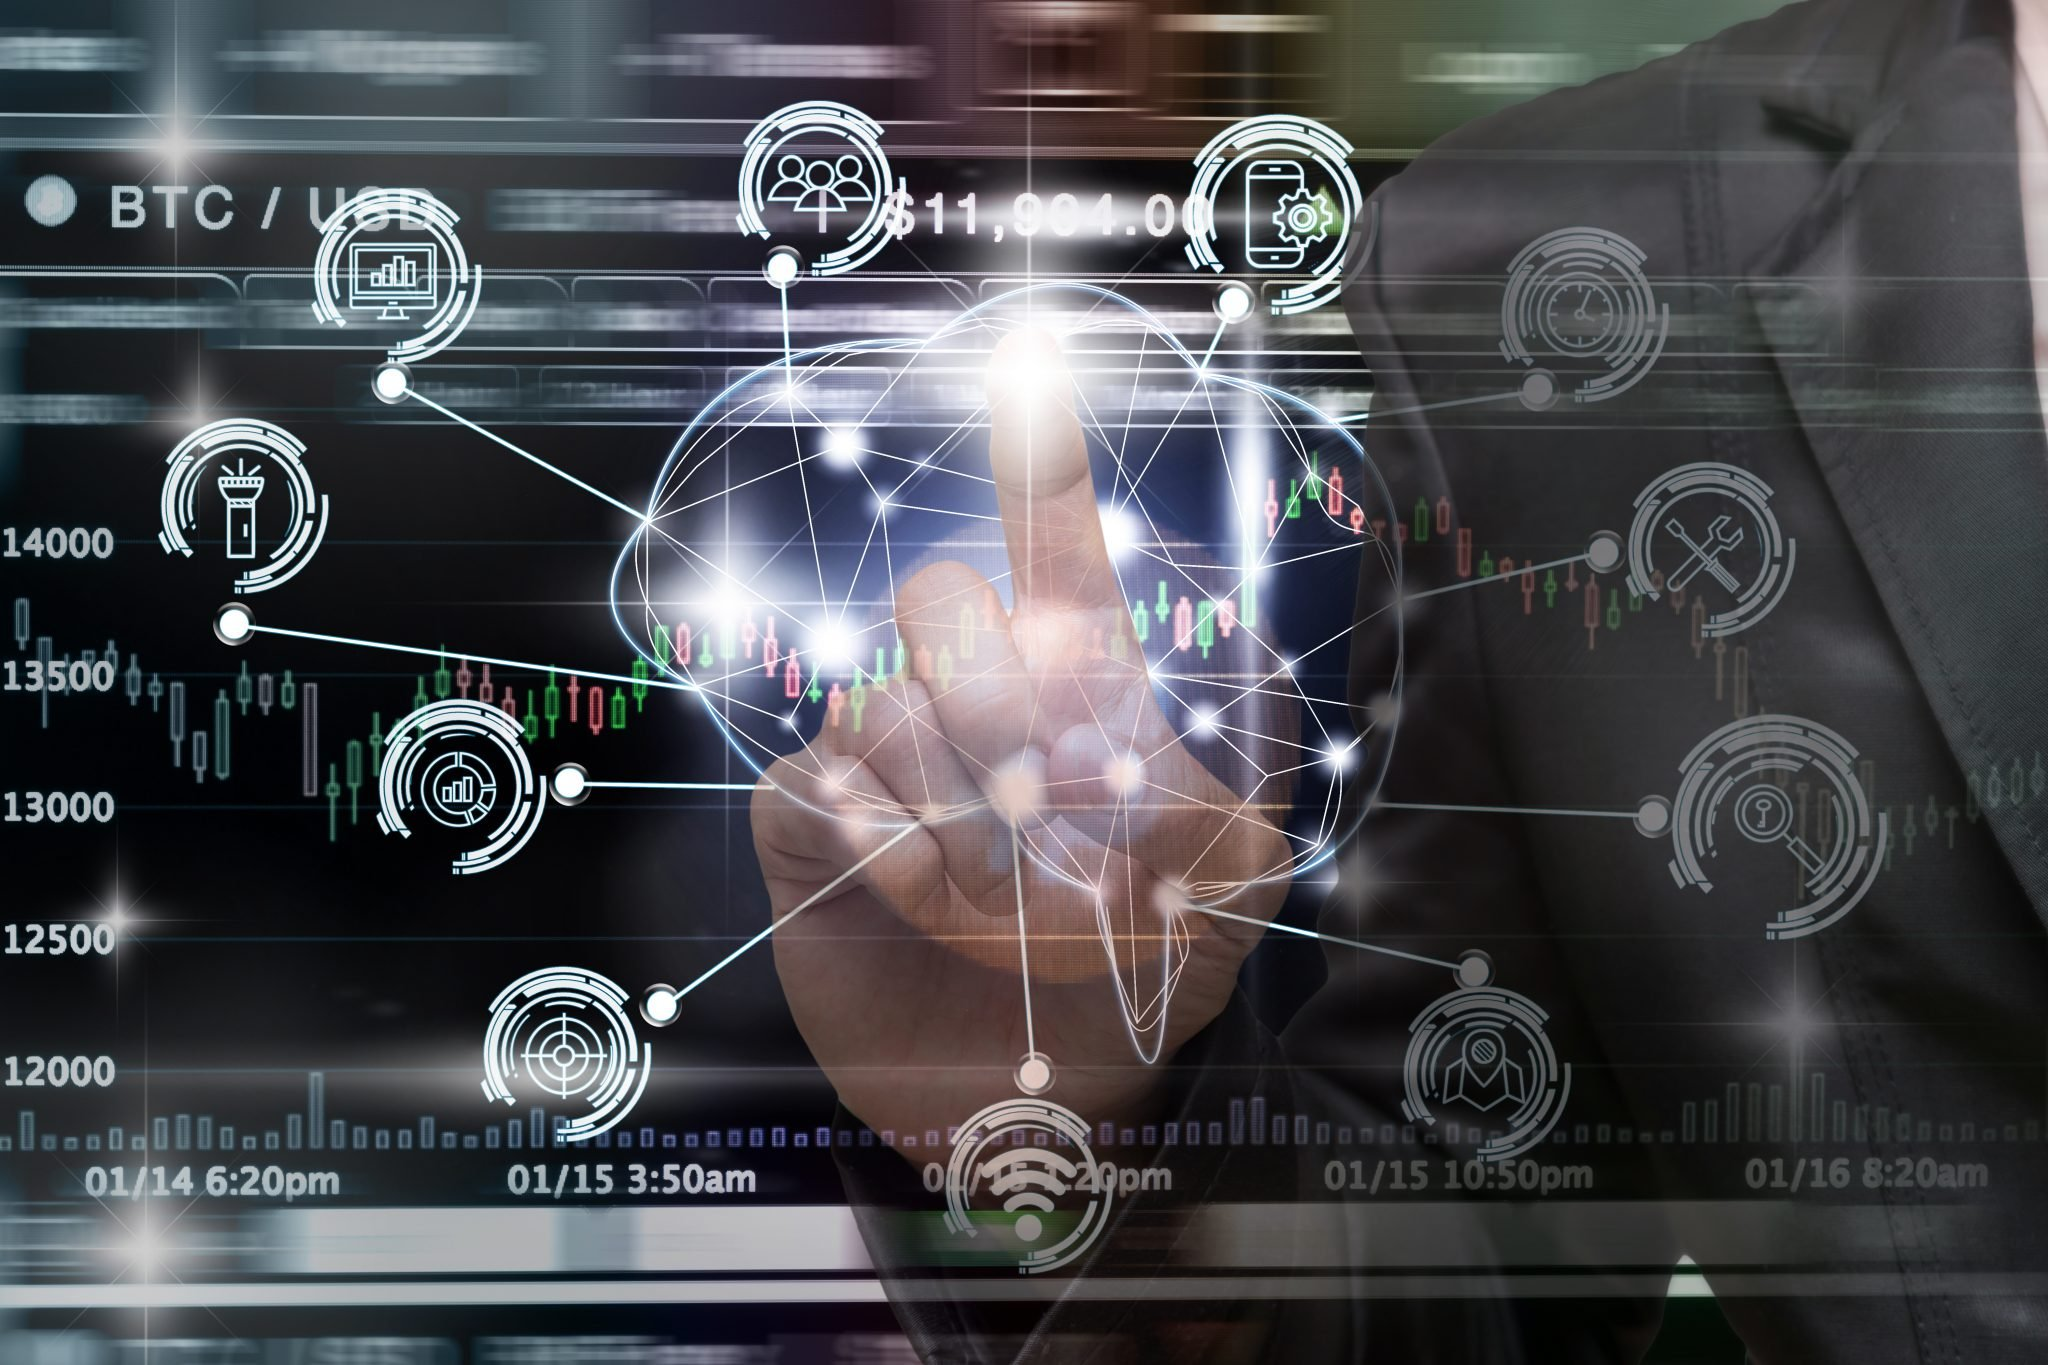 Businessman hand pointing the Polygonal brain shape of an artificial intelligence with various icon of smart city Internet of Things Technology over Cryptocurrency Bitcoin exchange trading, AI concept